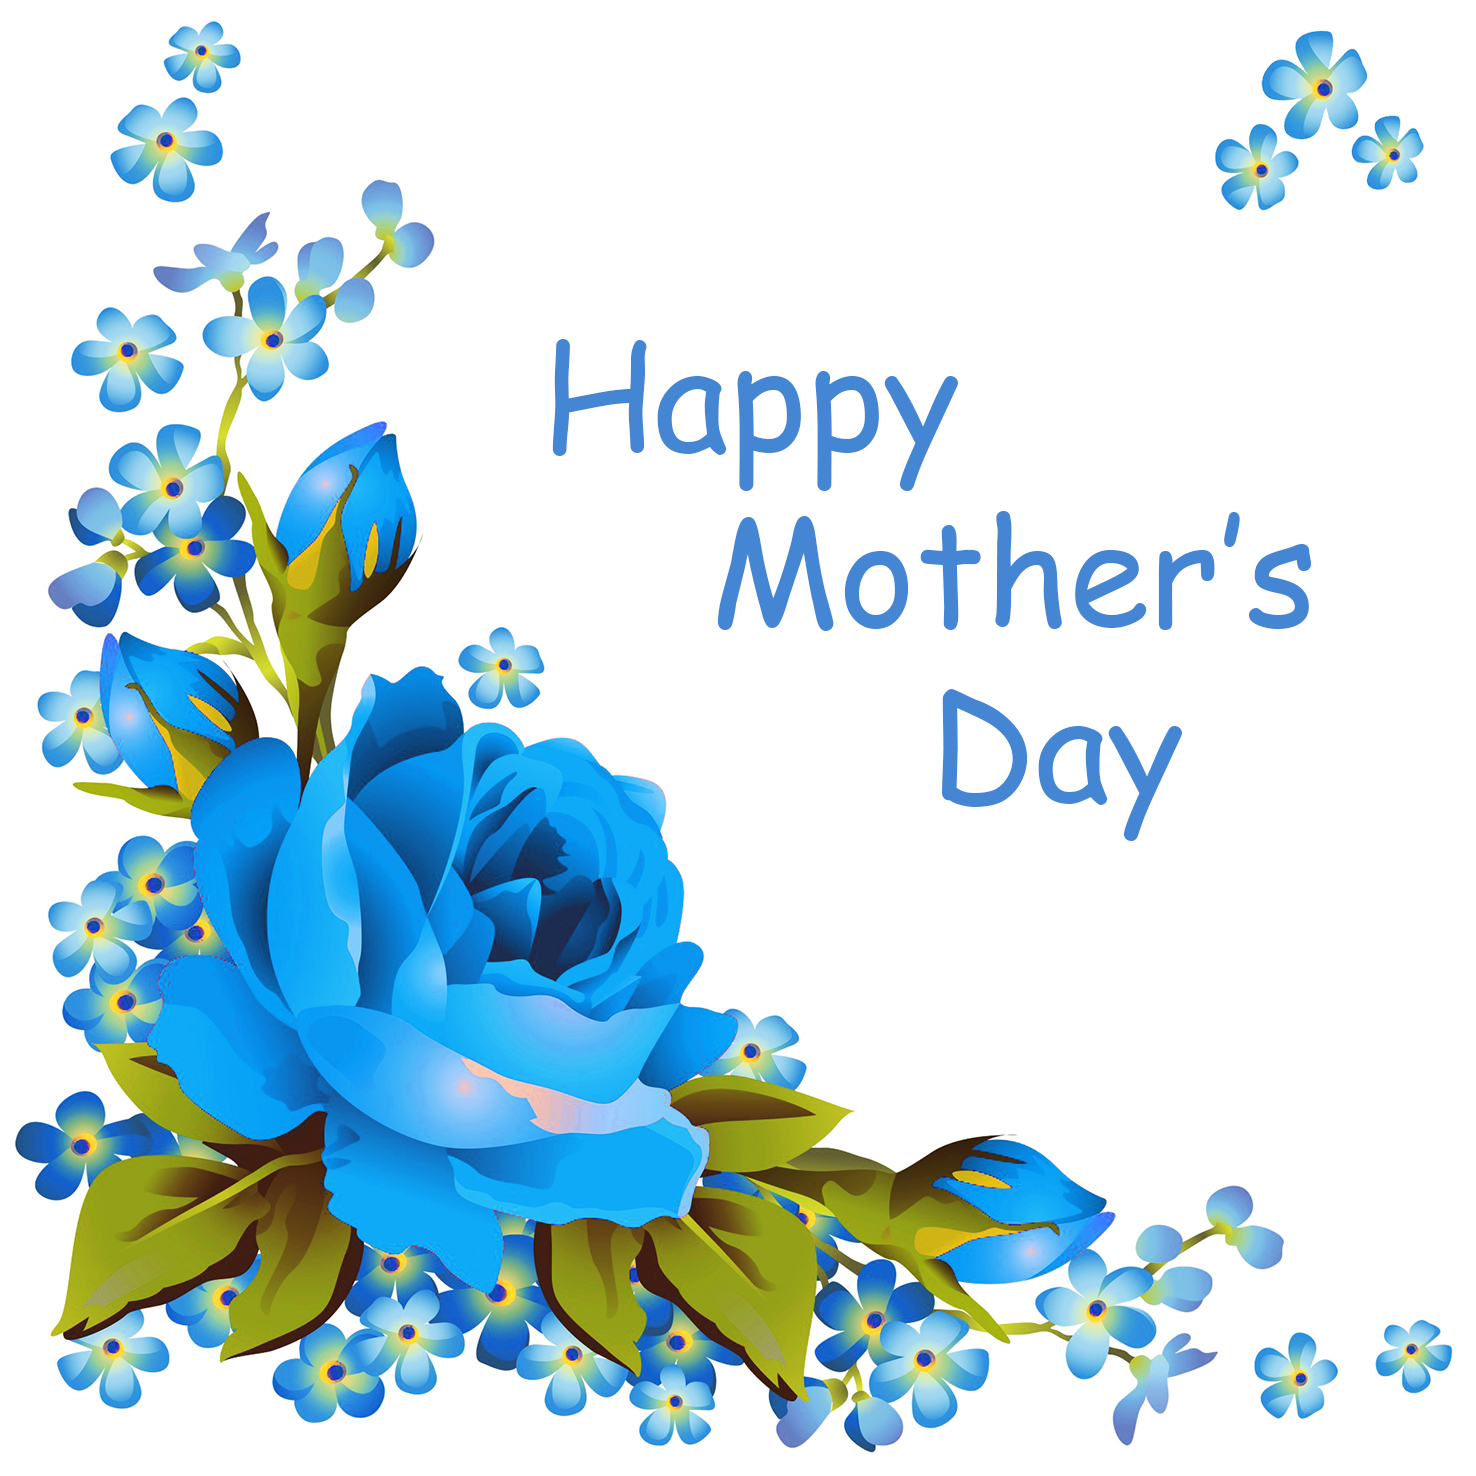 blue rose and forget-me-not mother's day